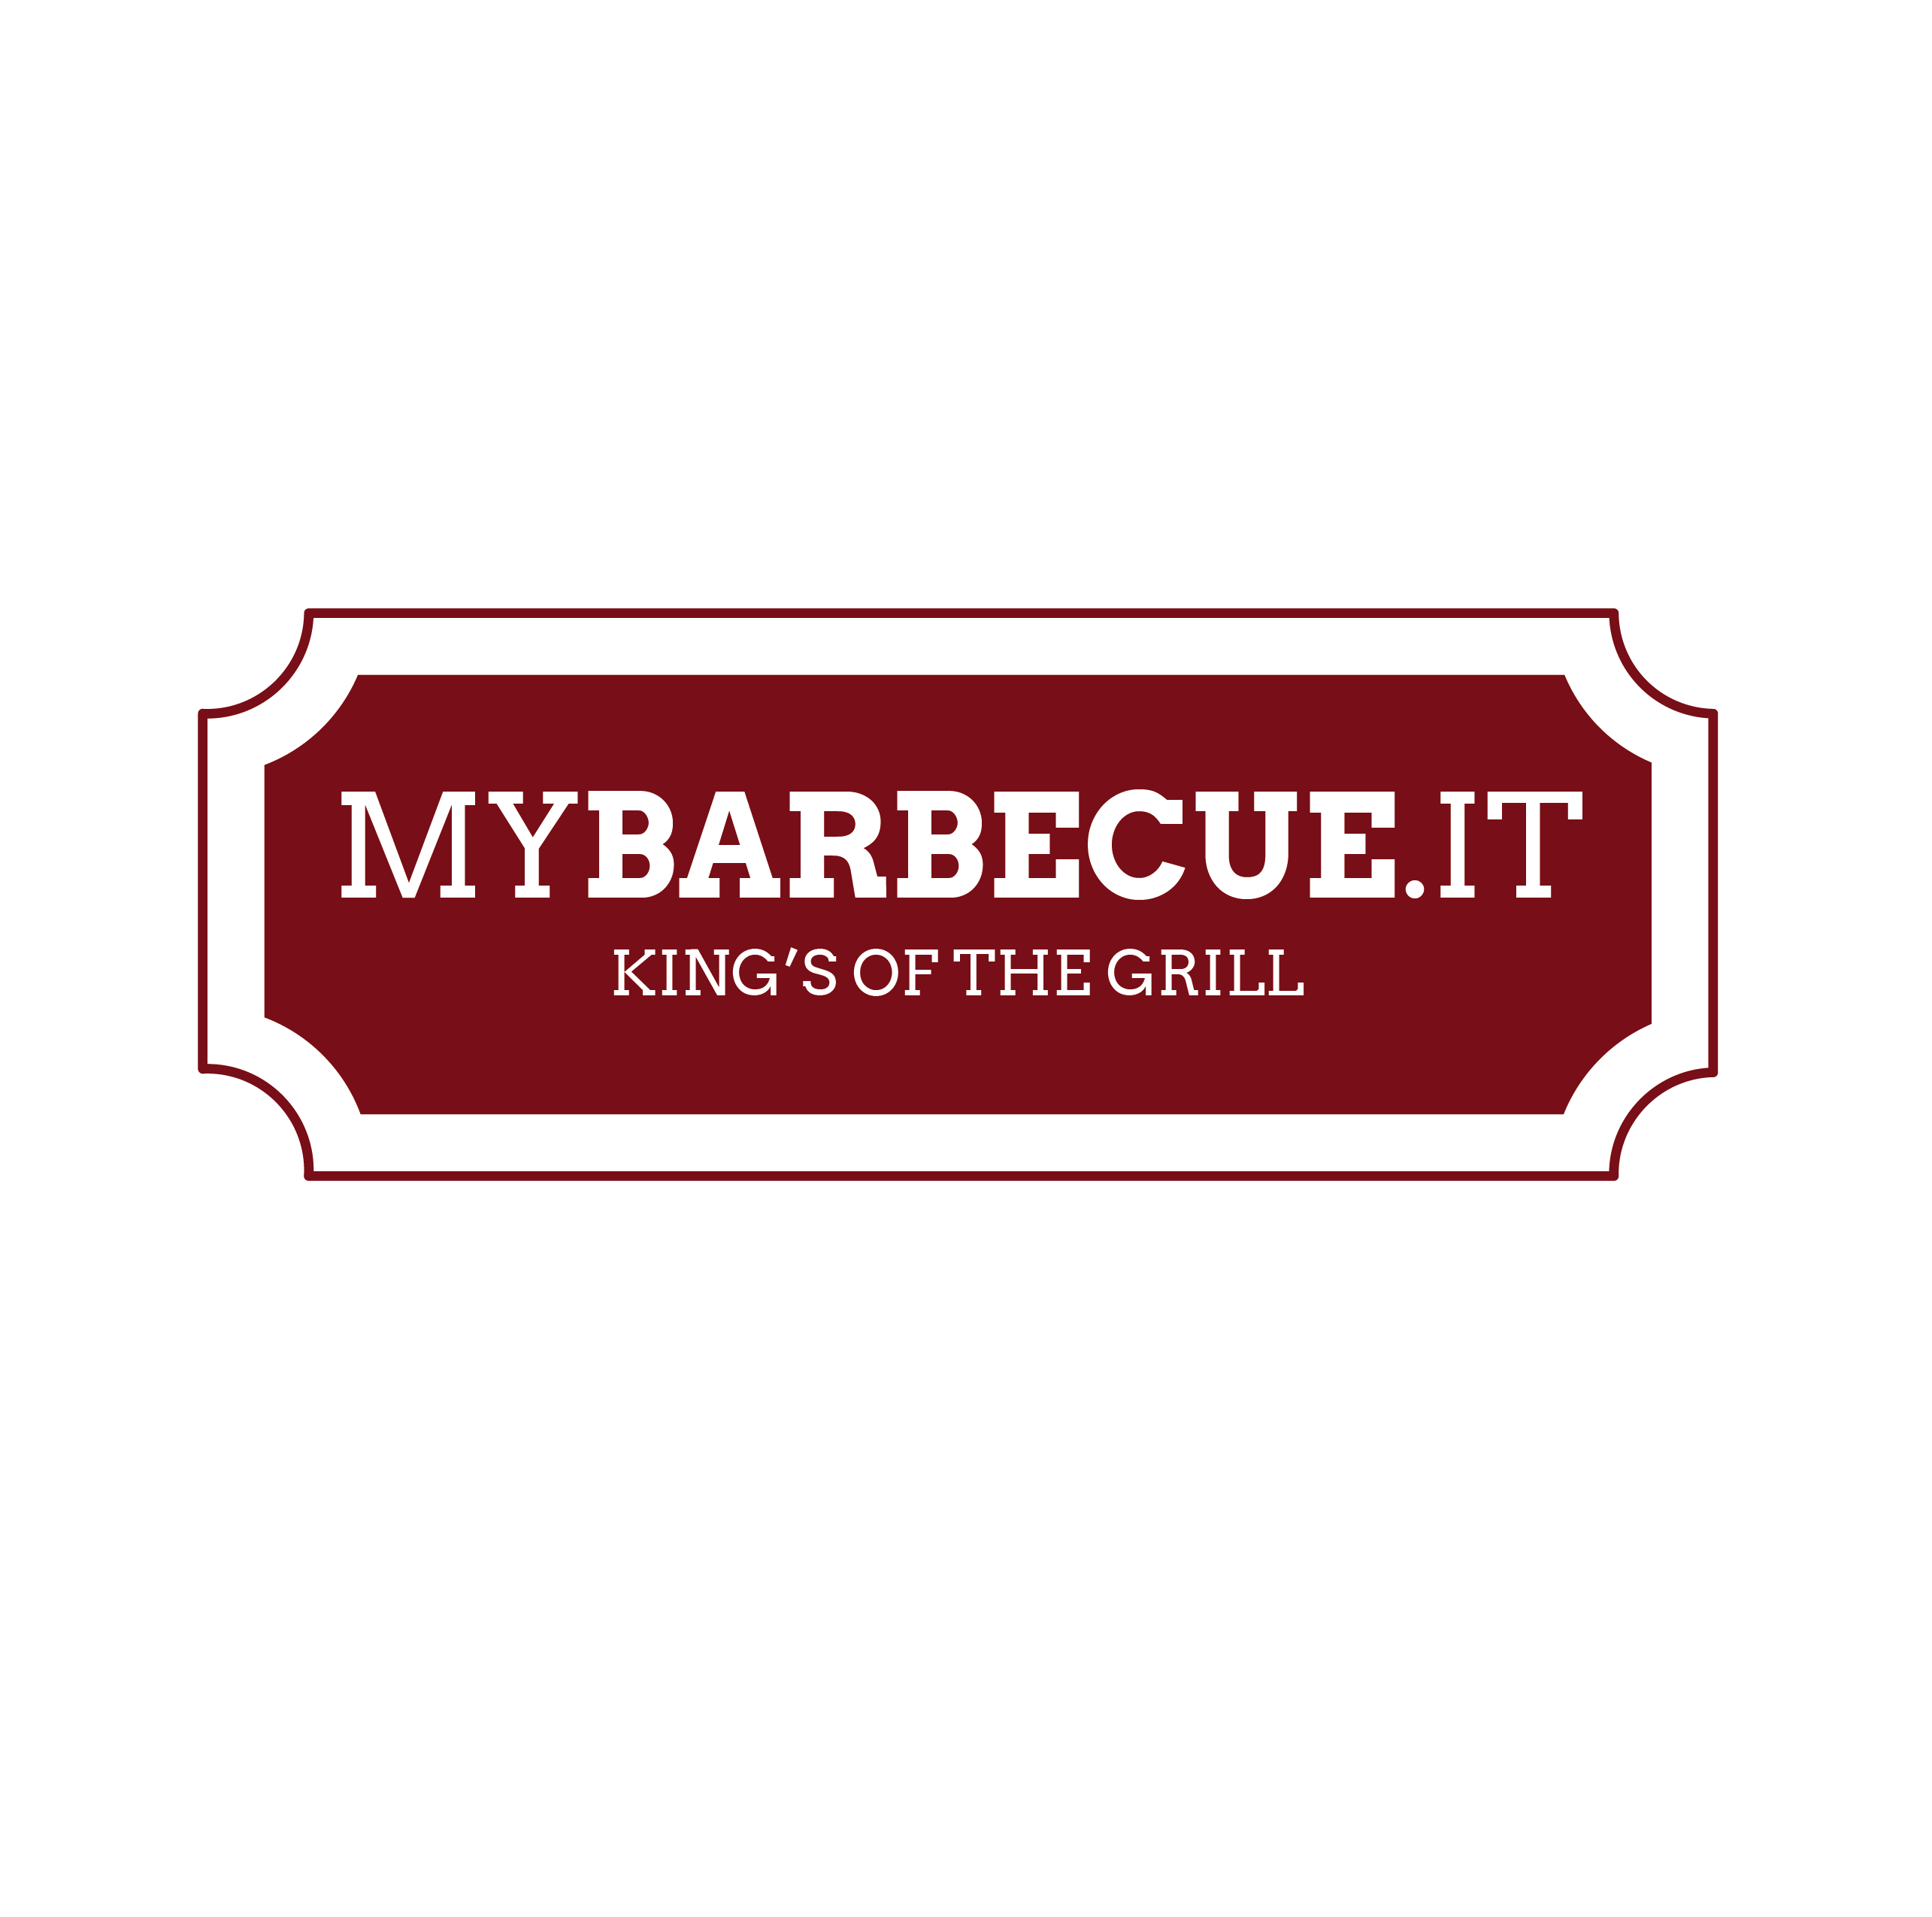 MYBARBECUE.IT